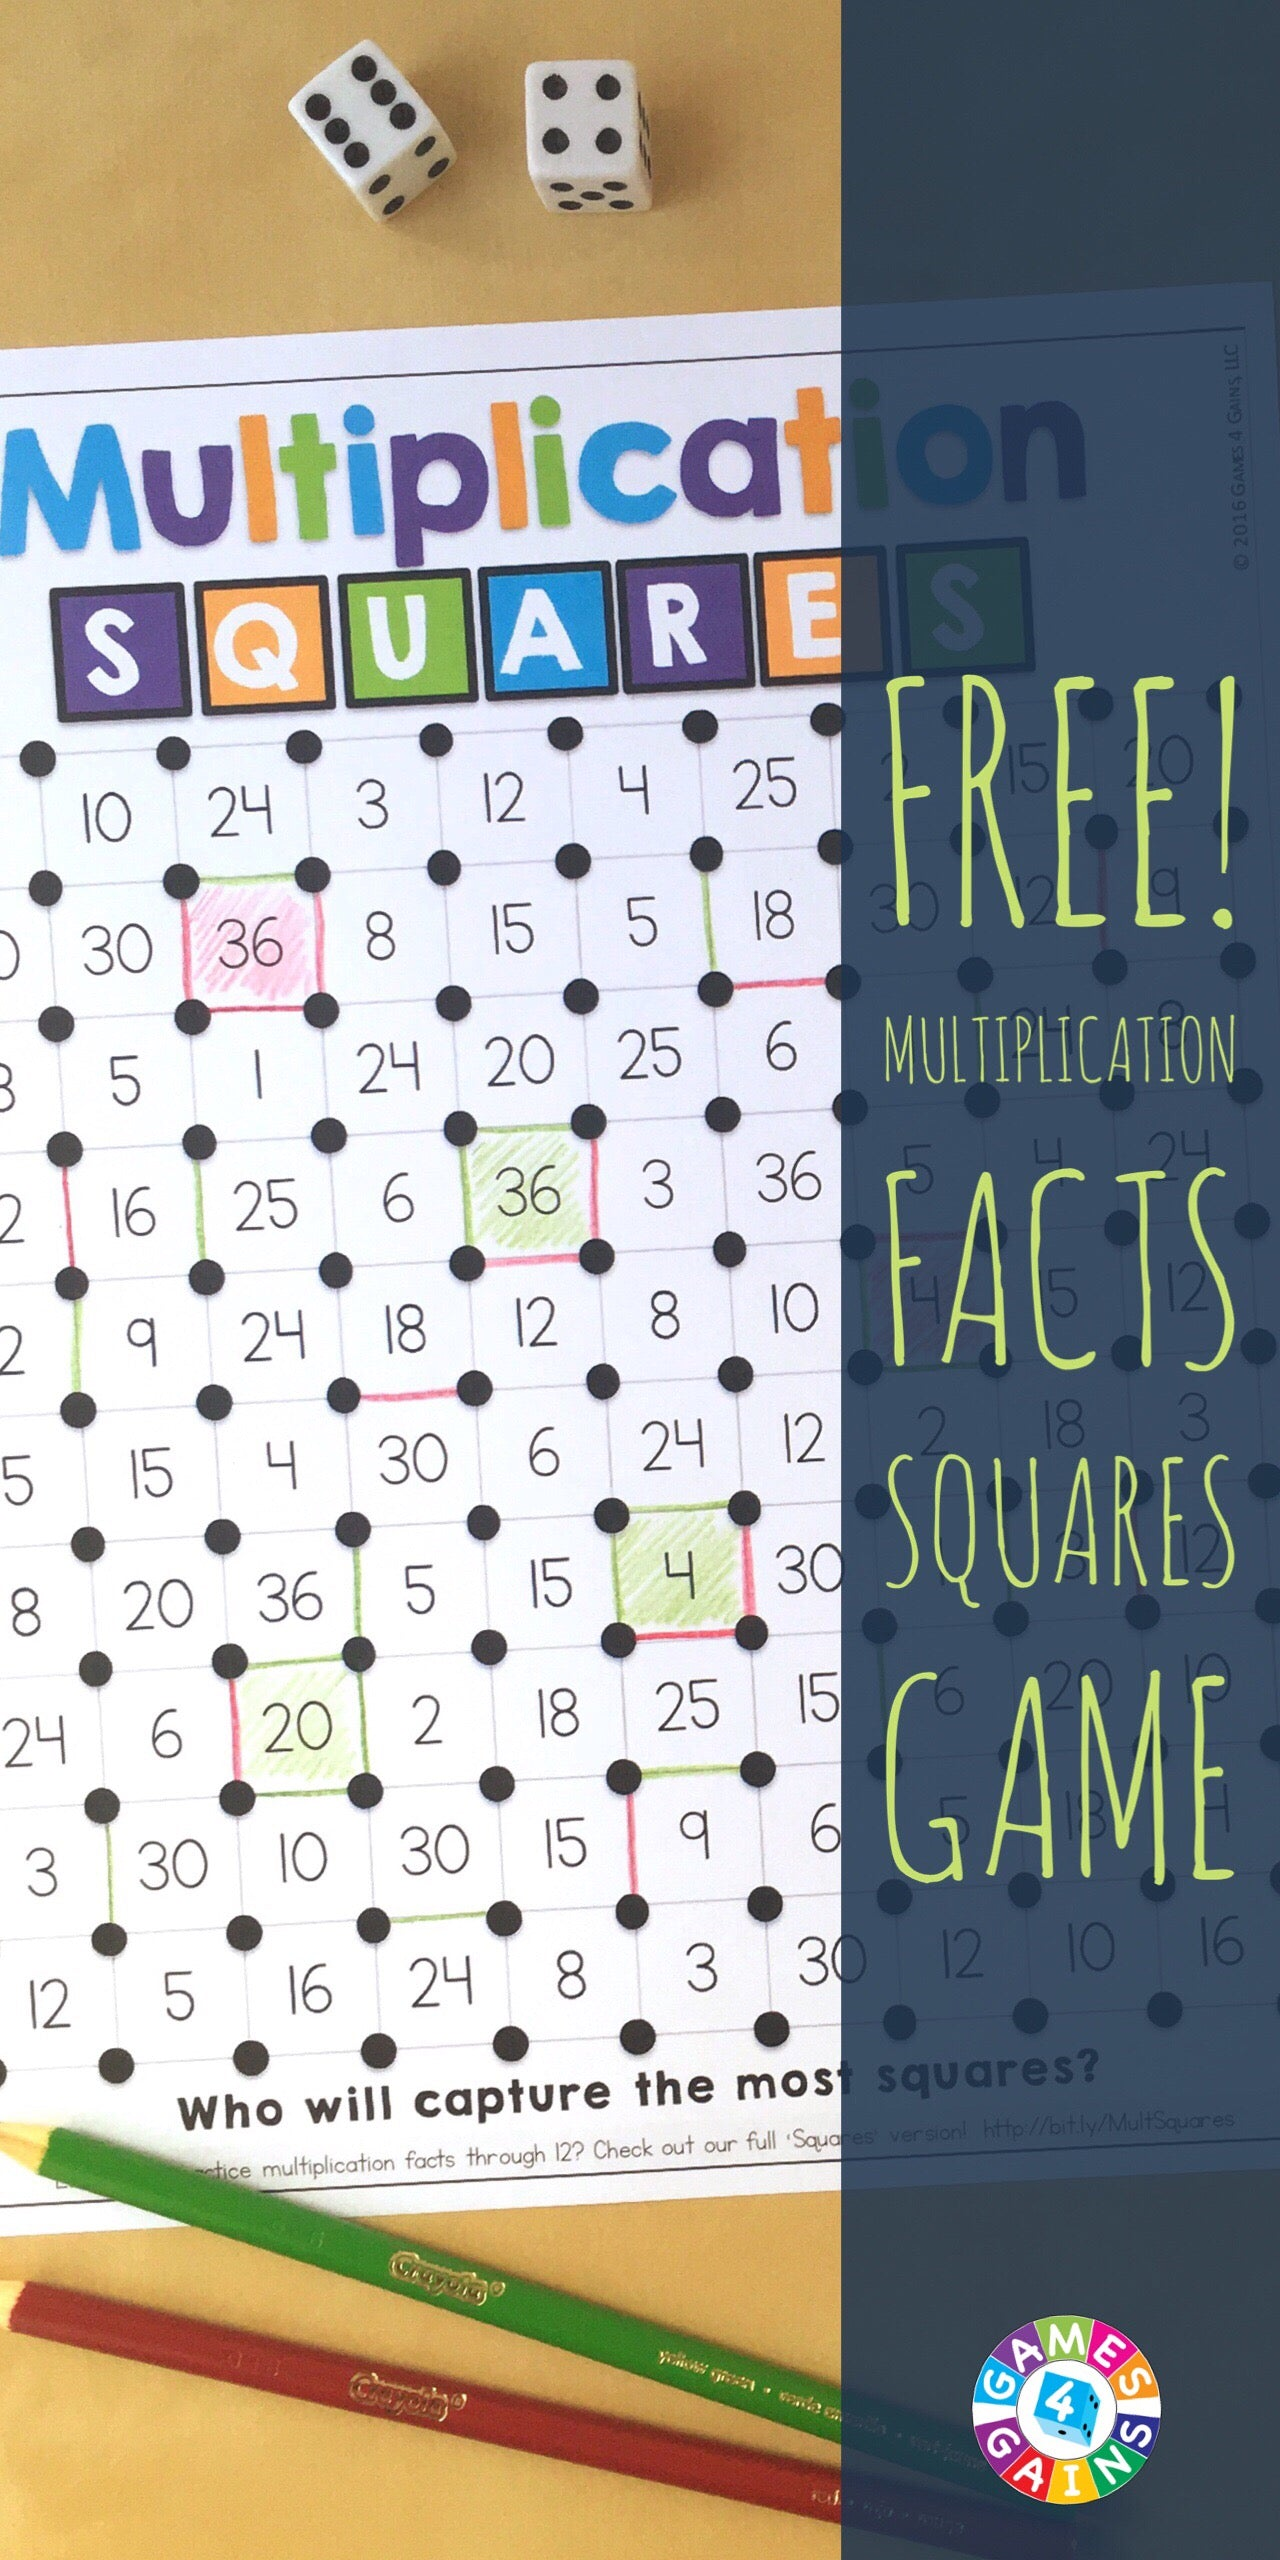 It is an image of Clever Multiplication Facts Games Printable